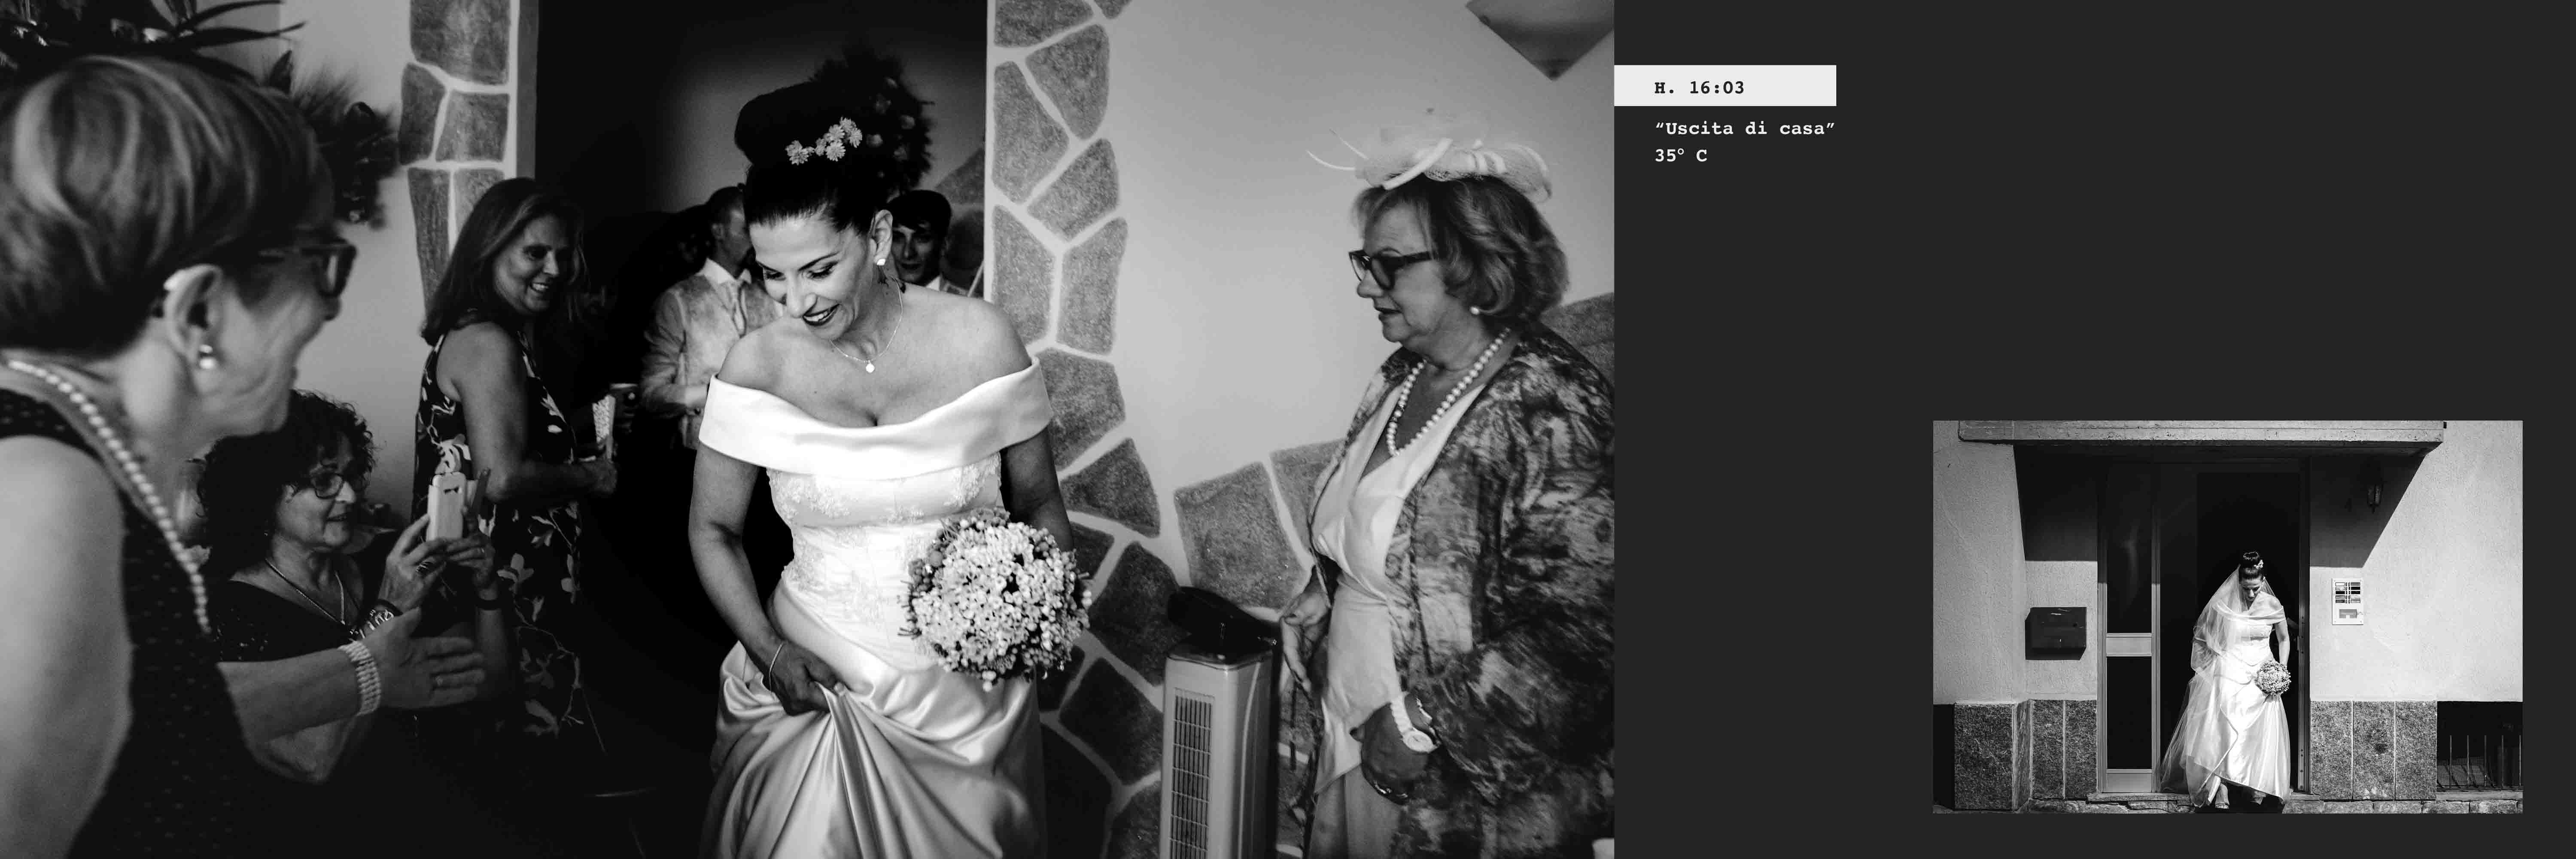 monicasica_fotografo matrimonio_torino_saluzzo_envets saluzzo_weddingday_weddingphotographer-25